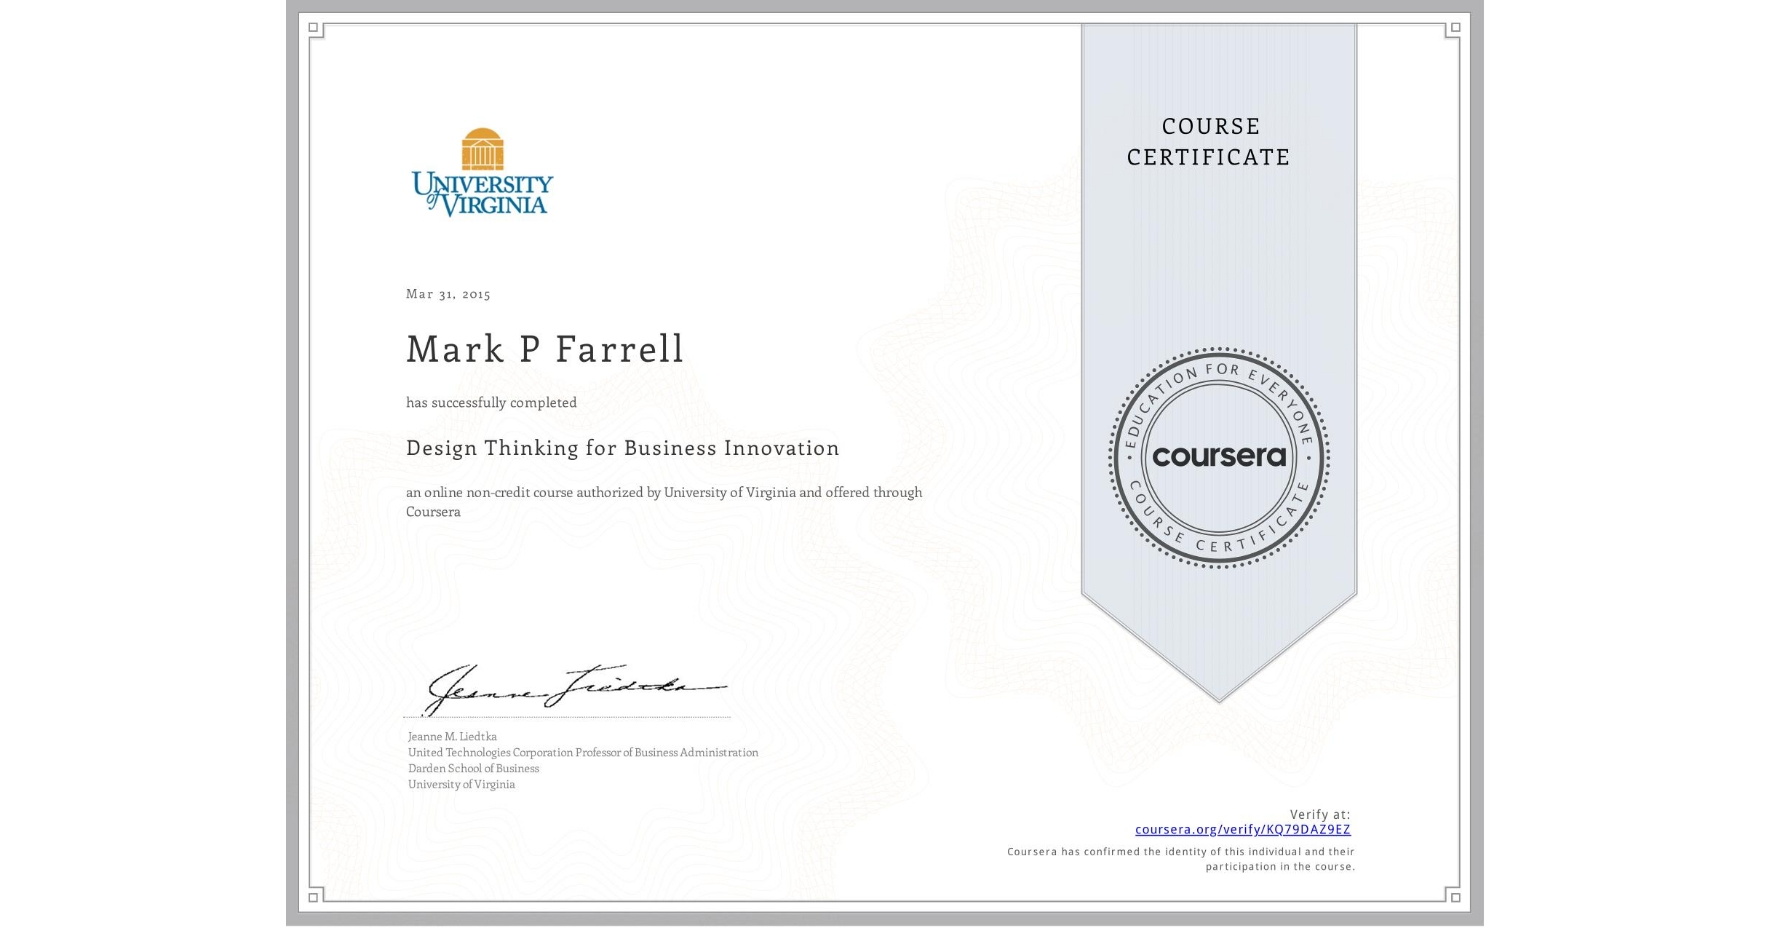 View certificate for Mark P Farrell, Design Thinking for Business Innovation, an online non-credit course authorized by University of Virginia and offered through Coursera